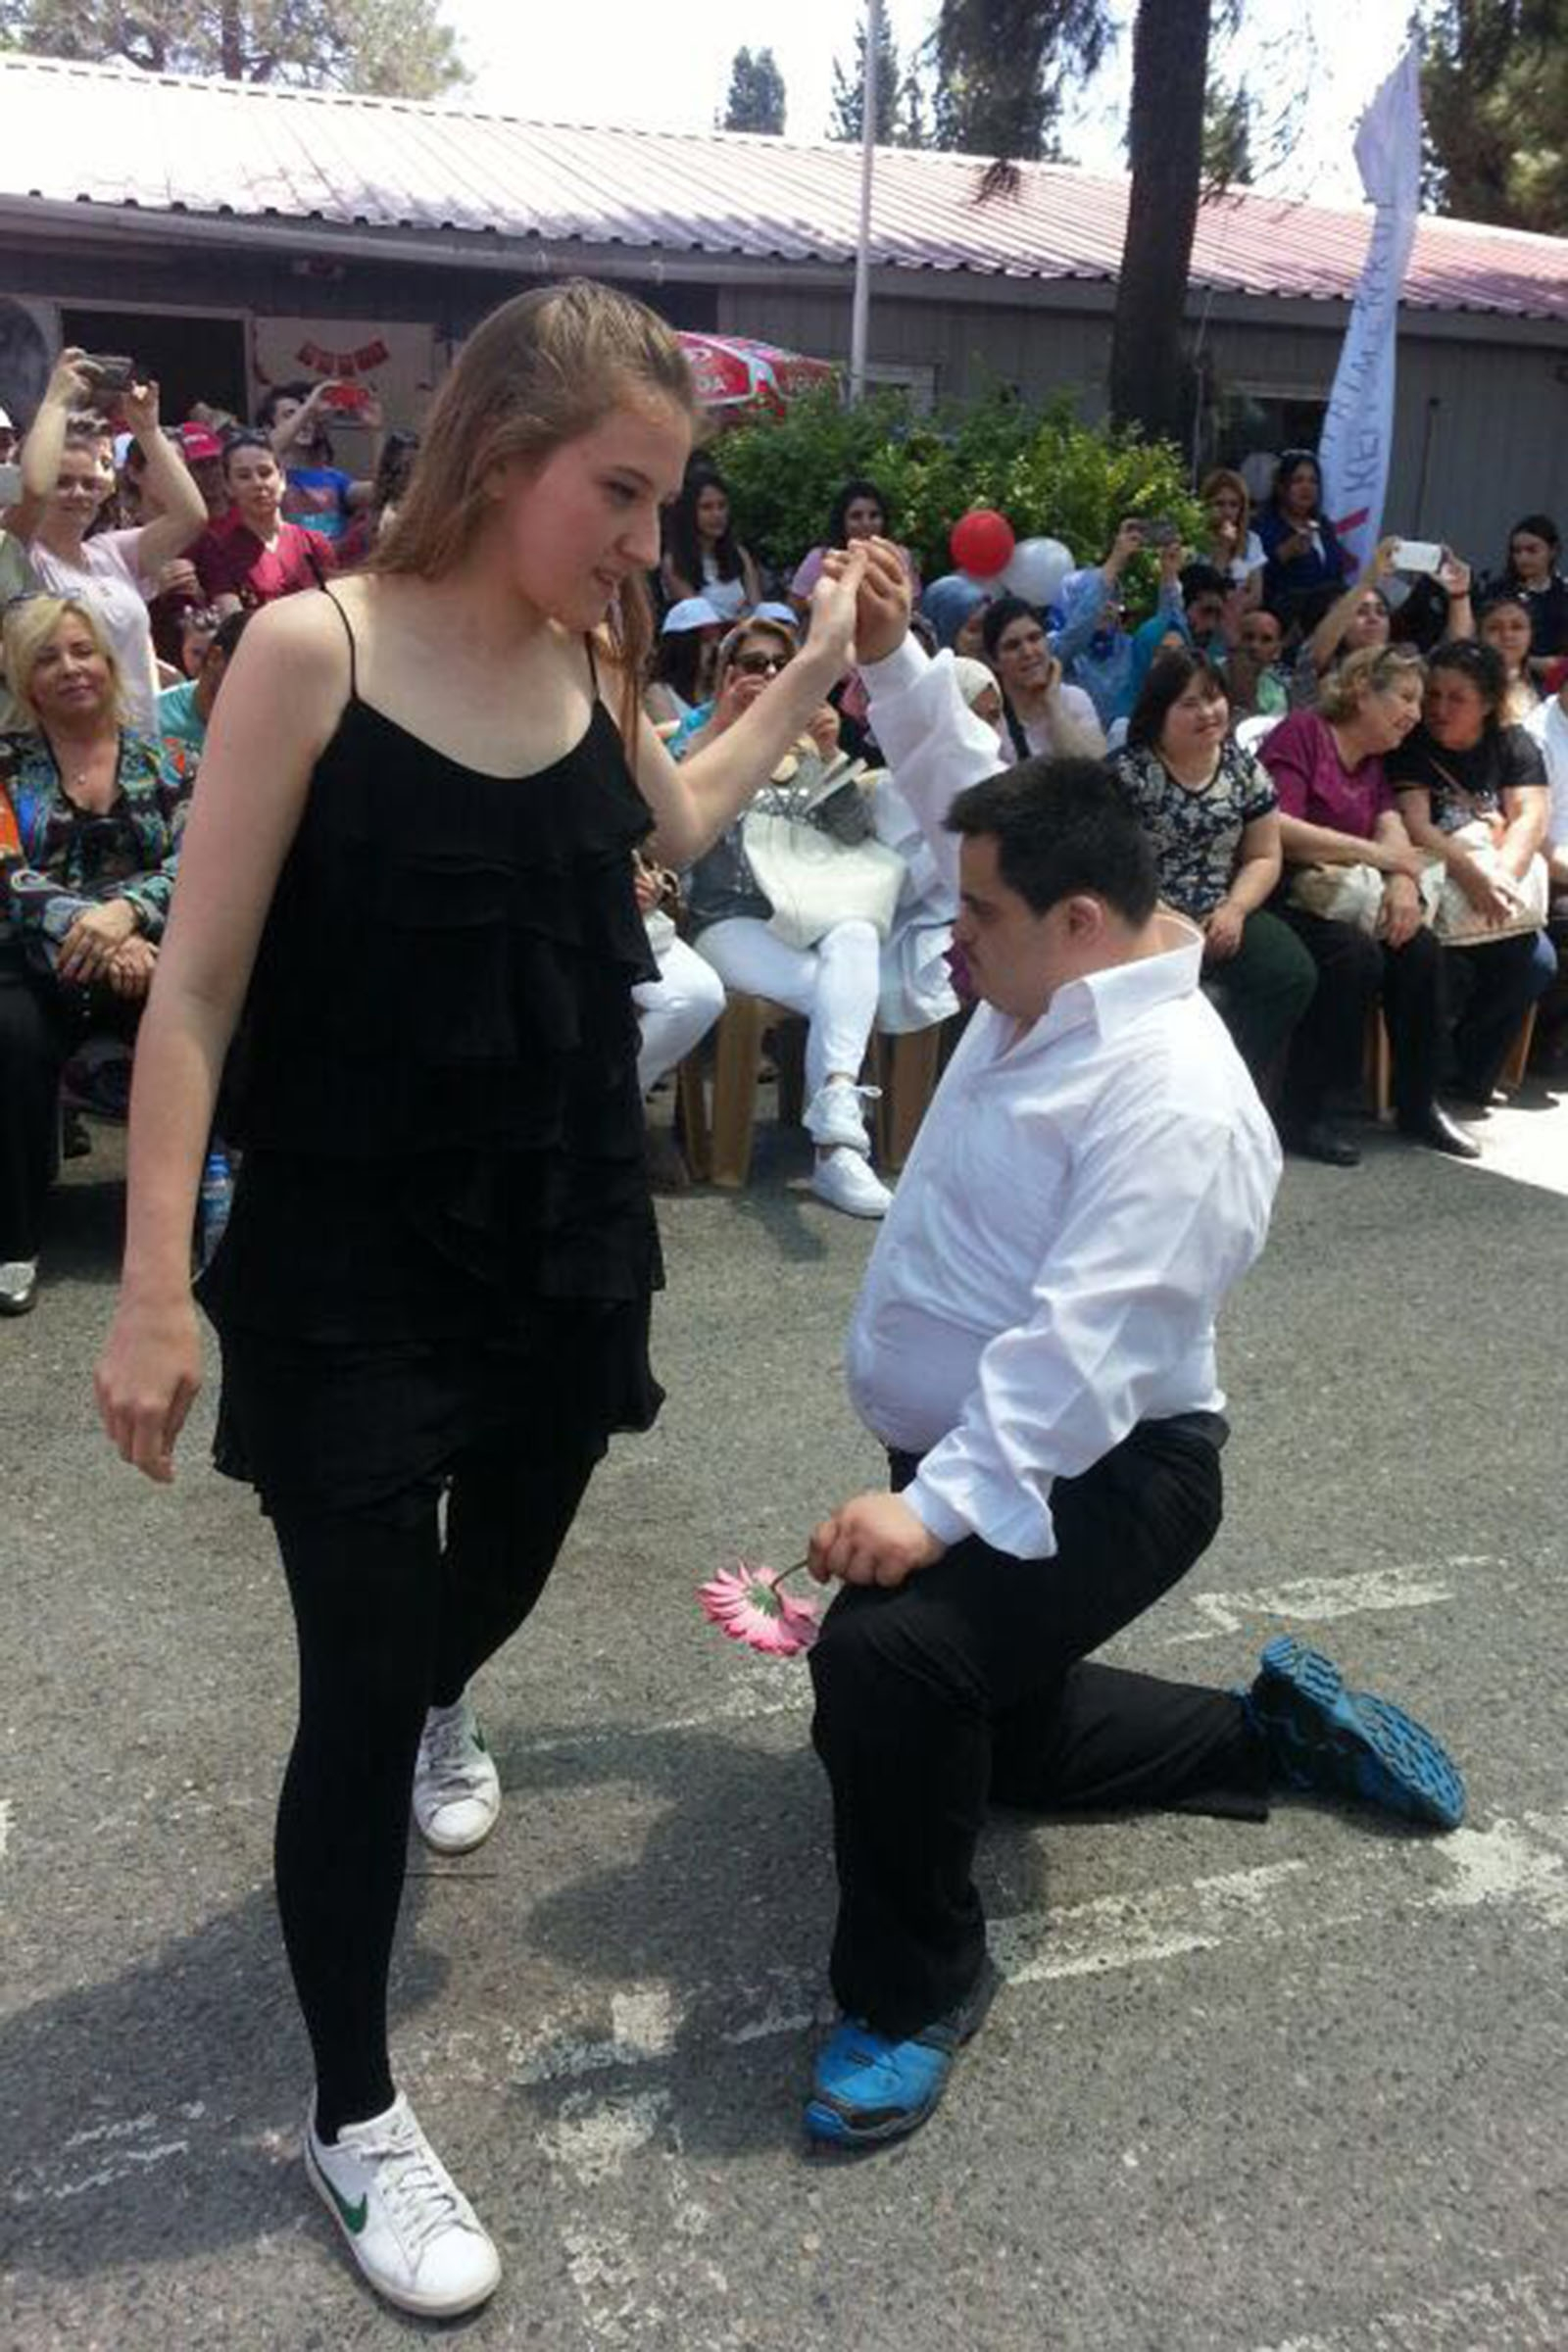 OVERCOMING DISABILITIES WITH TANGO